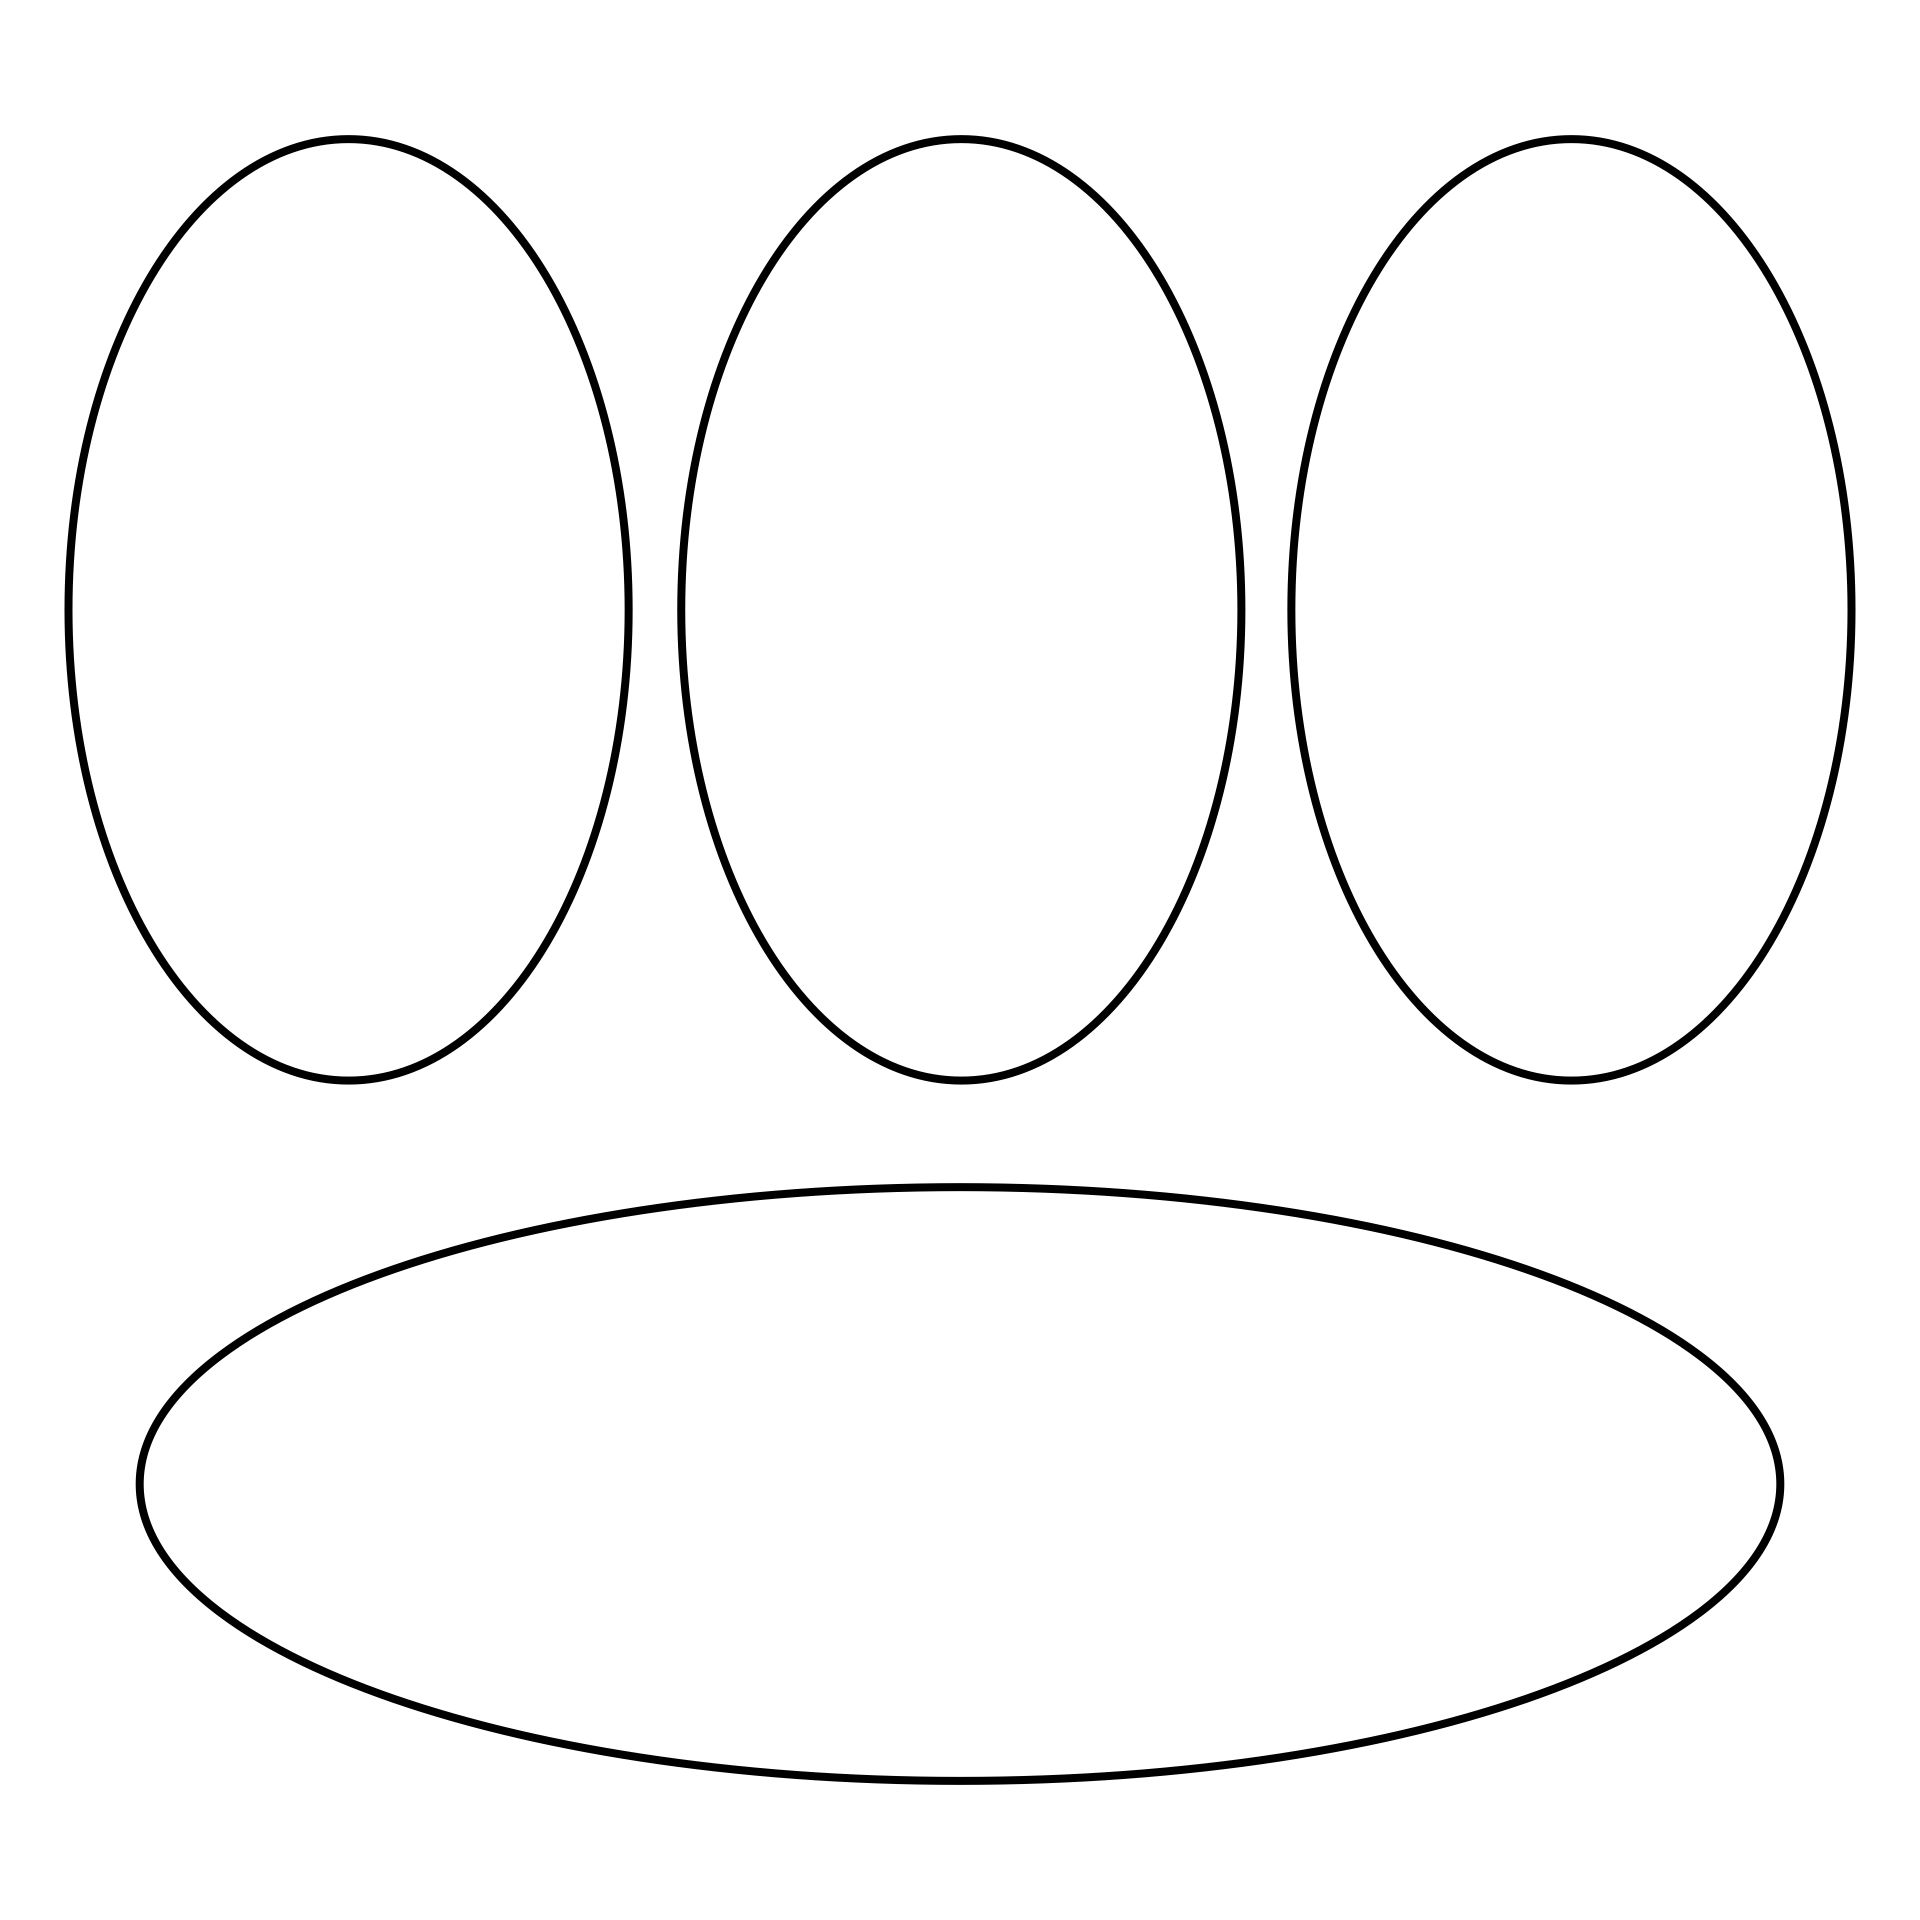 Printable Oval Template